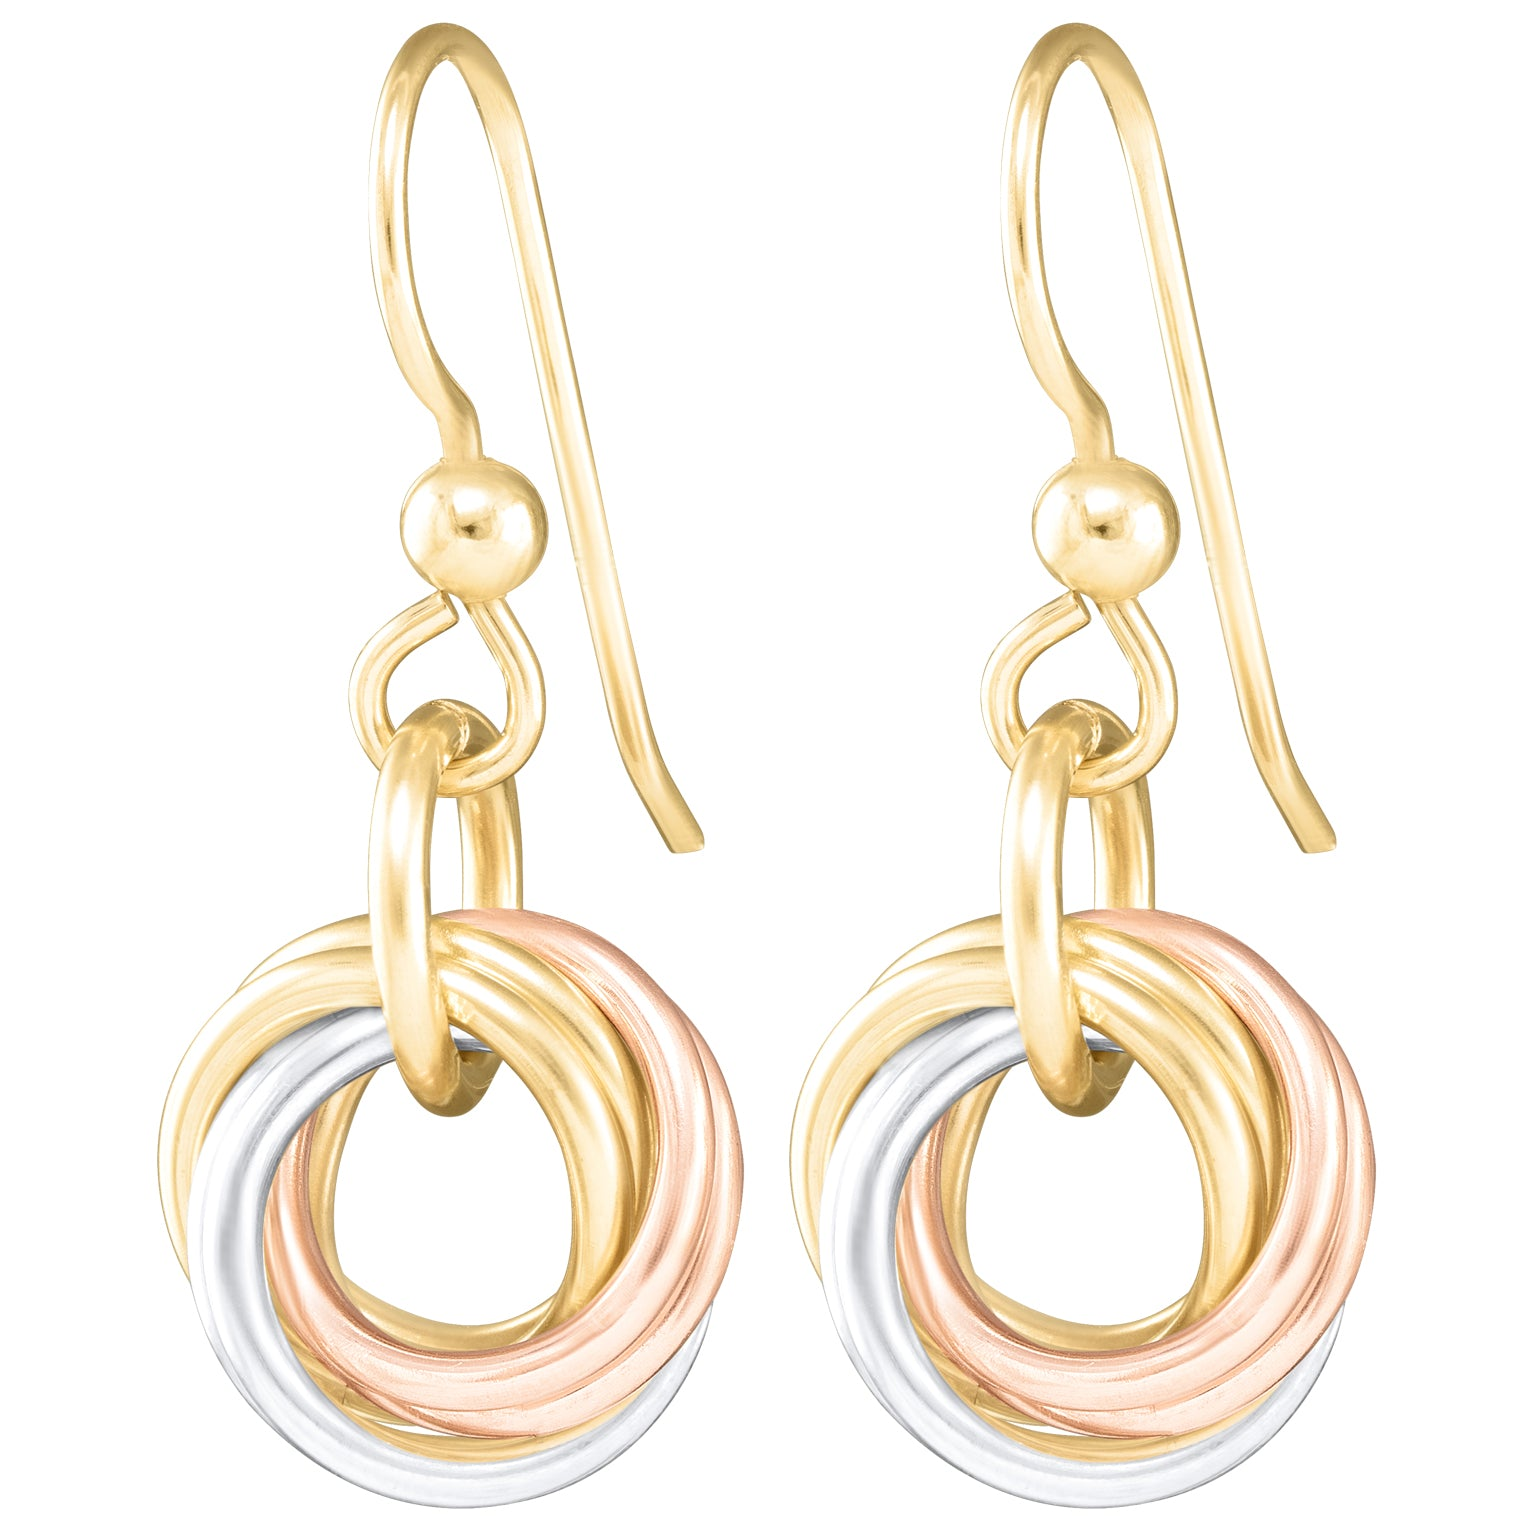 Tri Color Round Love Knot Dangle Earrings (Sterling Silver, 14K Yellow and Rose Gold Fill)